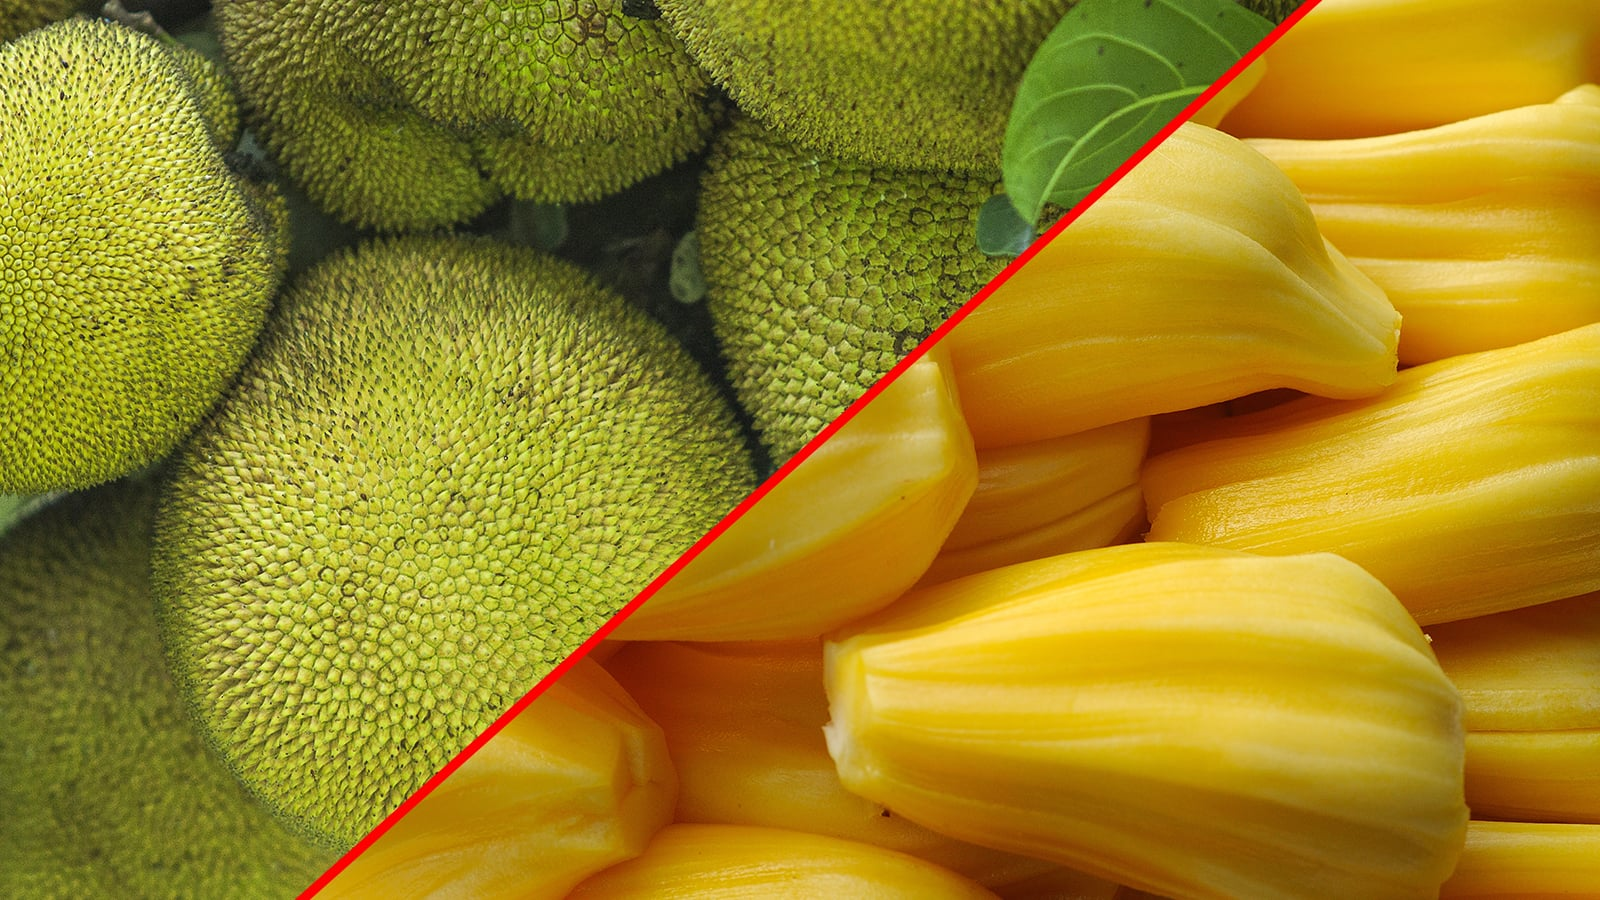 10 Health Benefits of Jackfruit